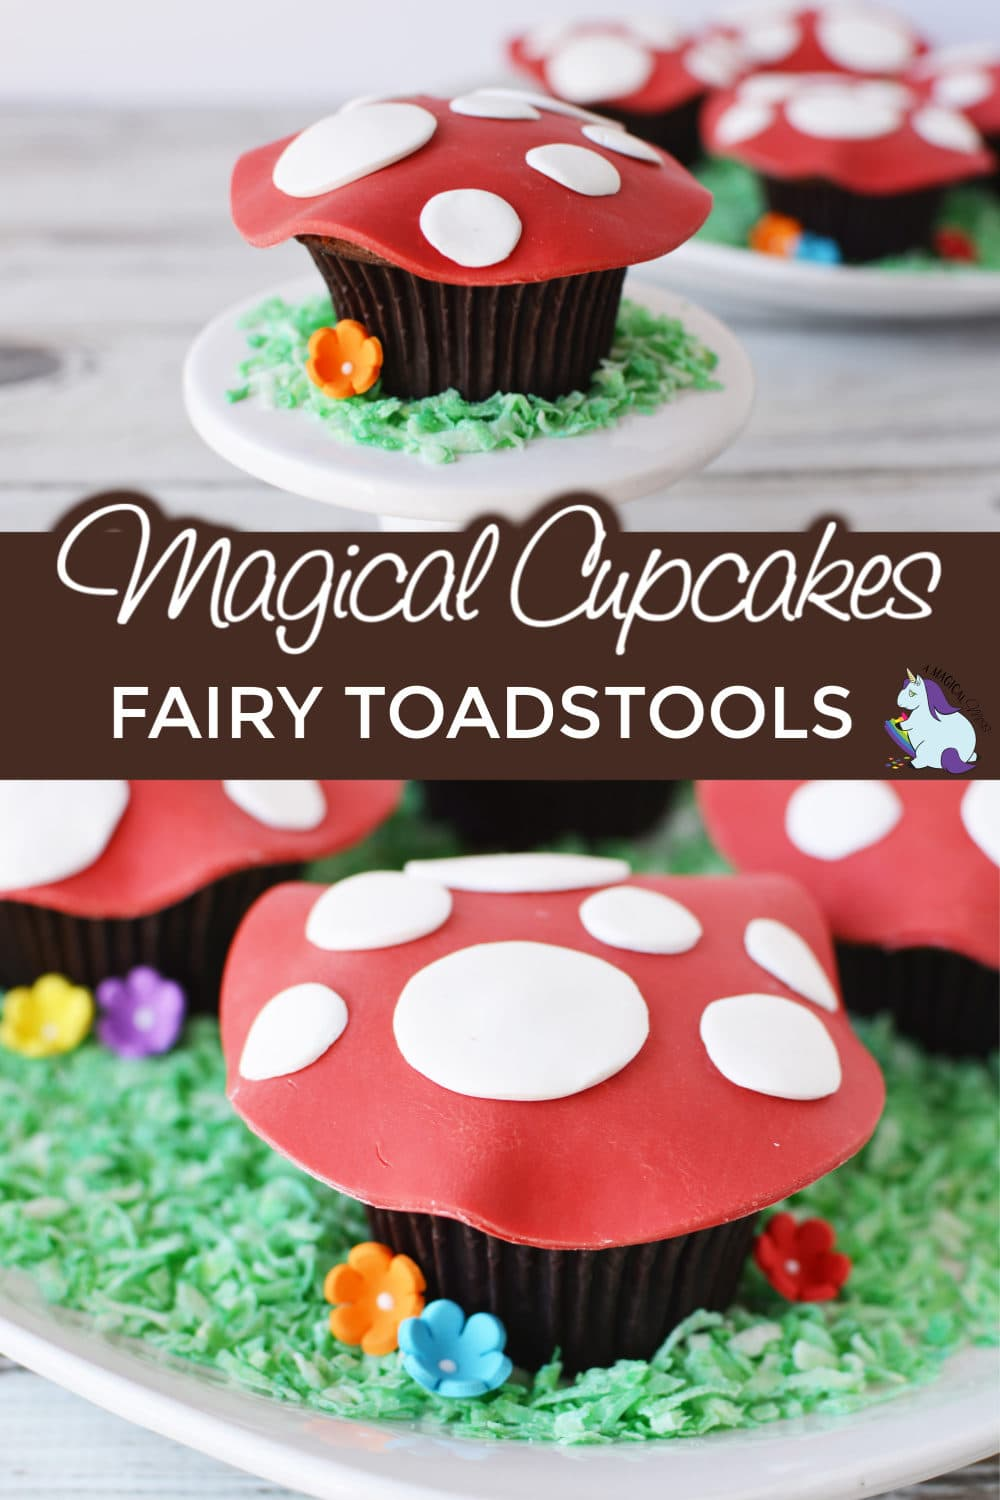 Magical Cupcakes - Fairy Toadstools